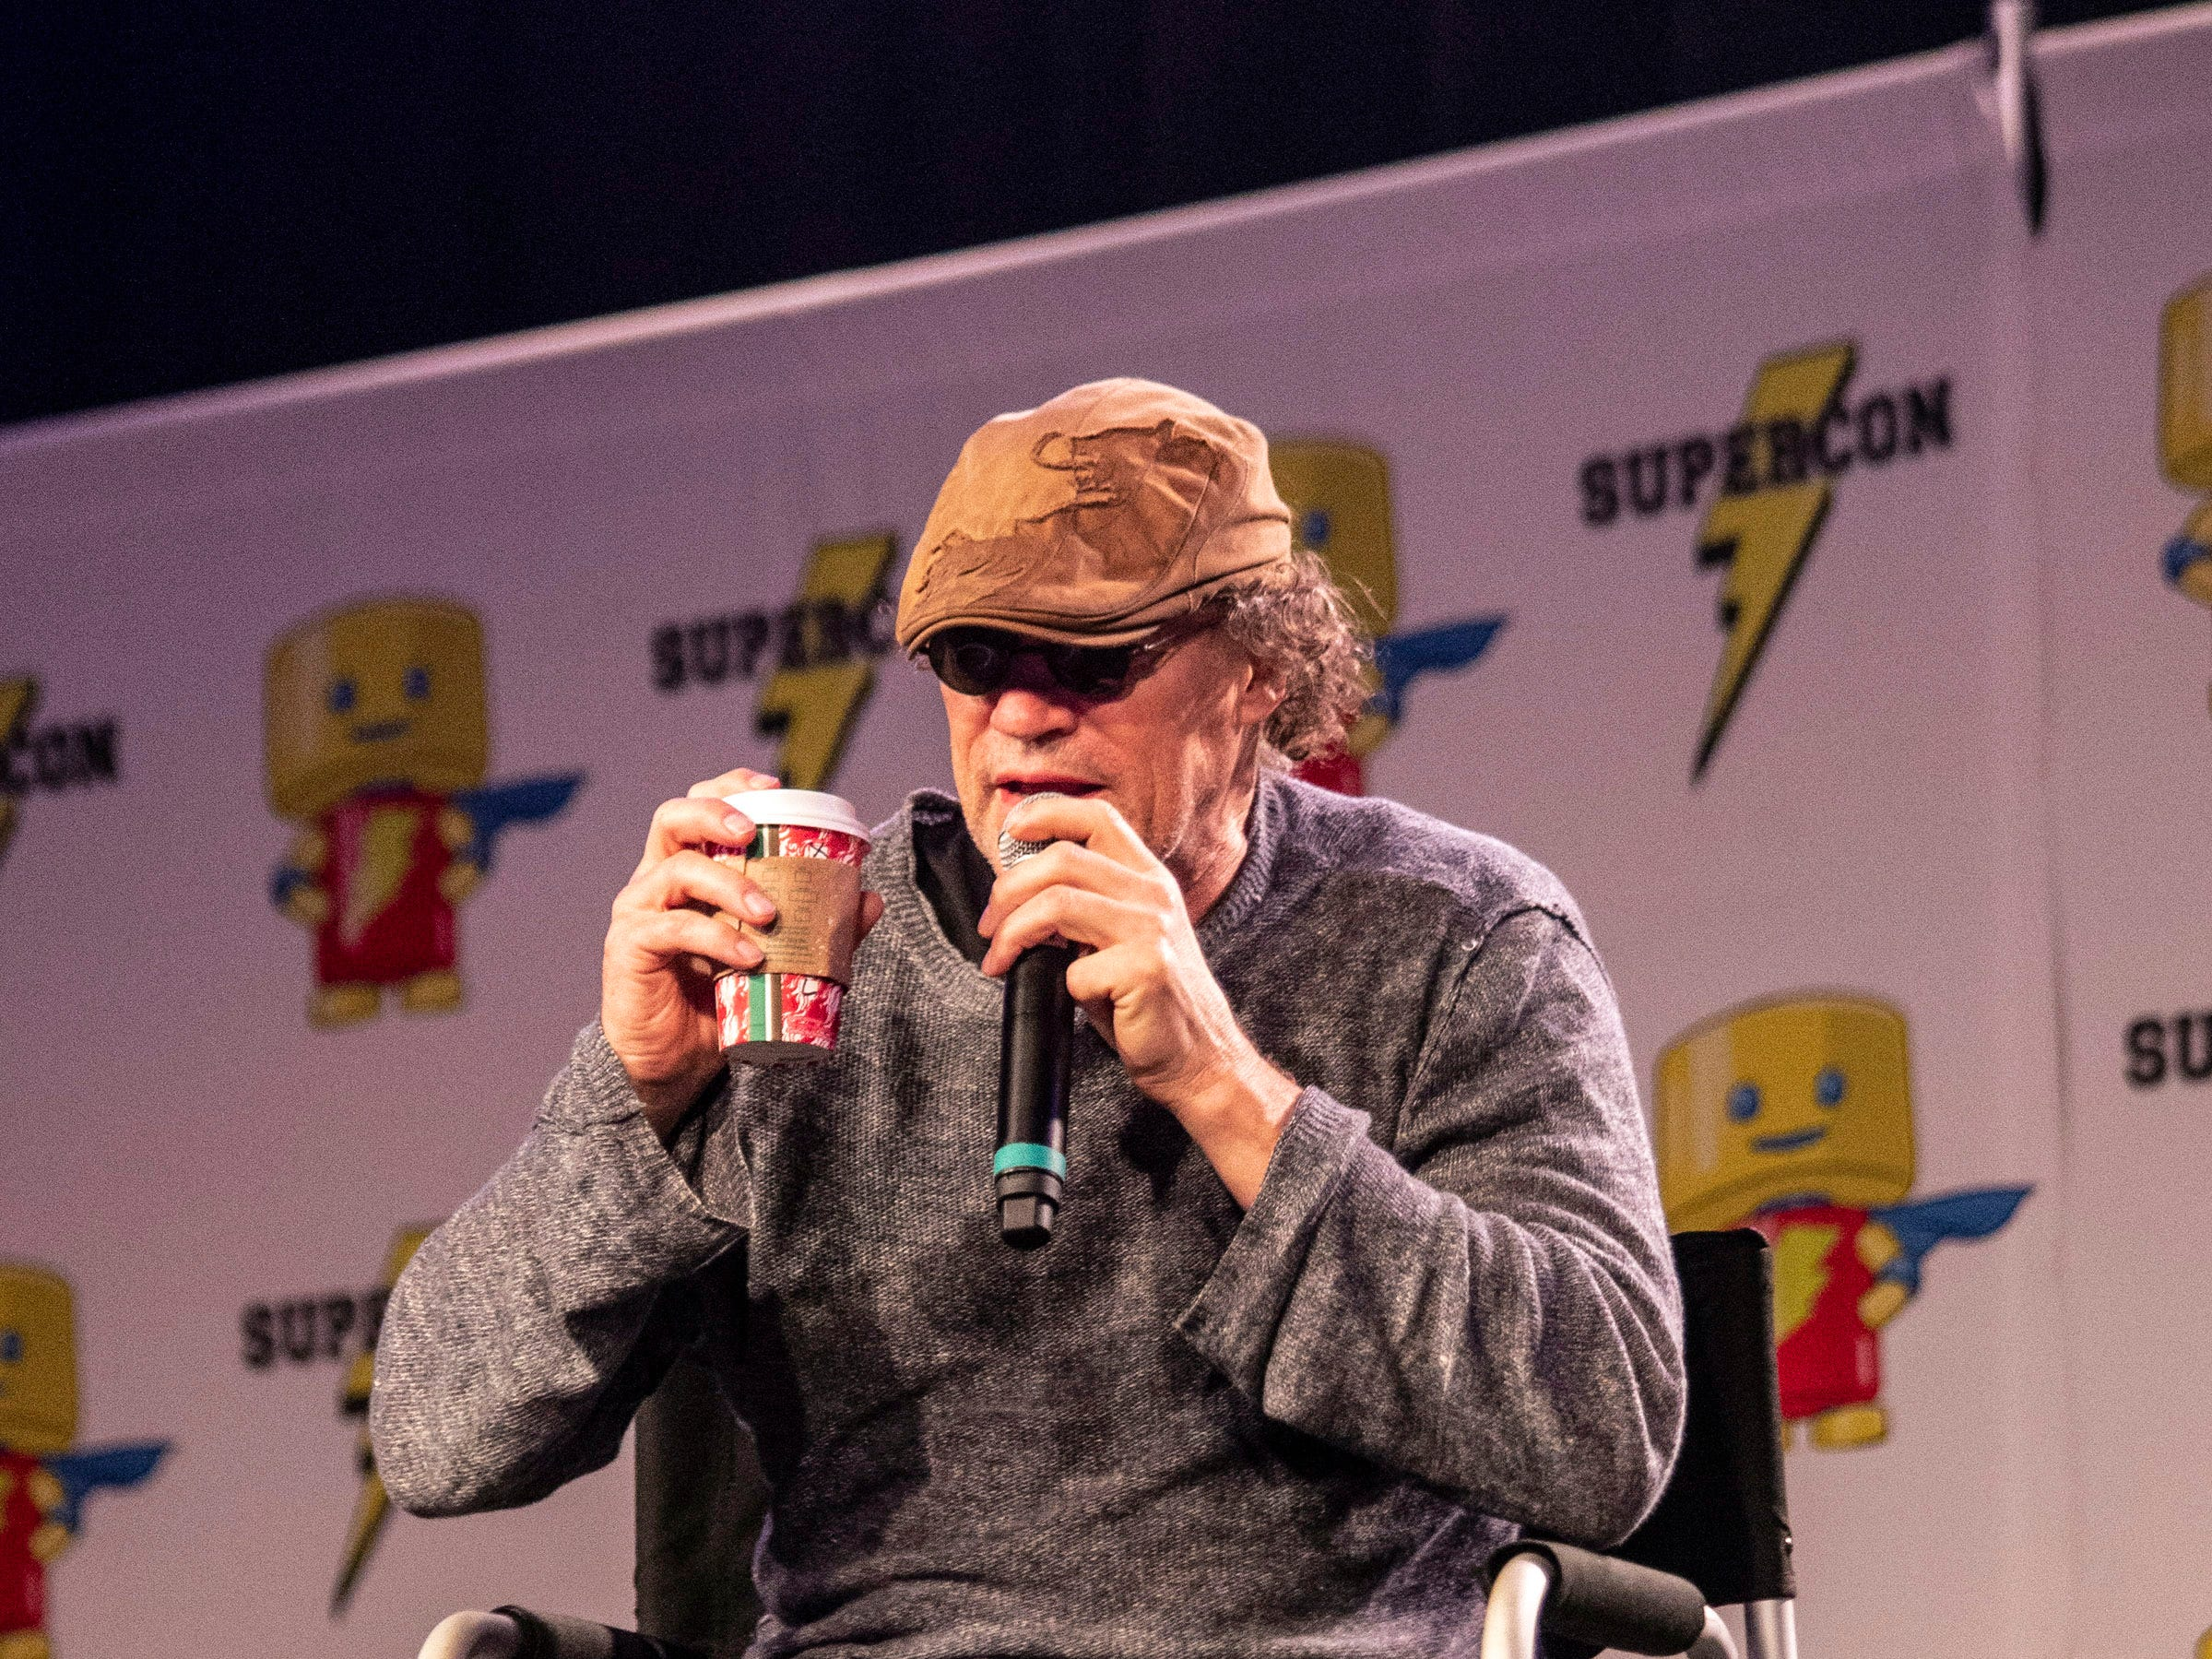 Actor Michael Rooker (Guardians of the Galaxy, The Walking Dead) was a featured speaker for a round of celebrity Q&A during Louisville SuperCon on Saturday. 12/1/18